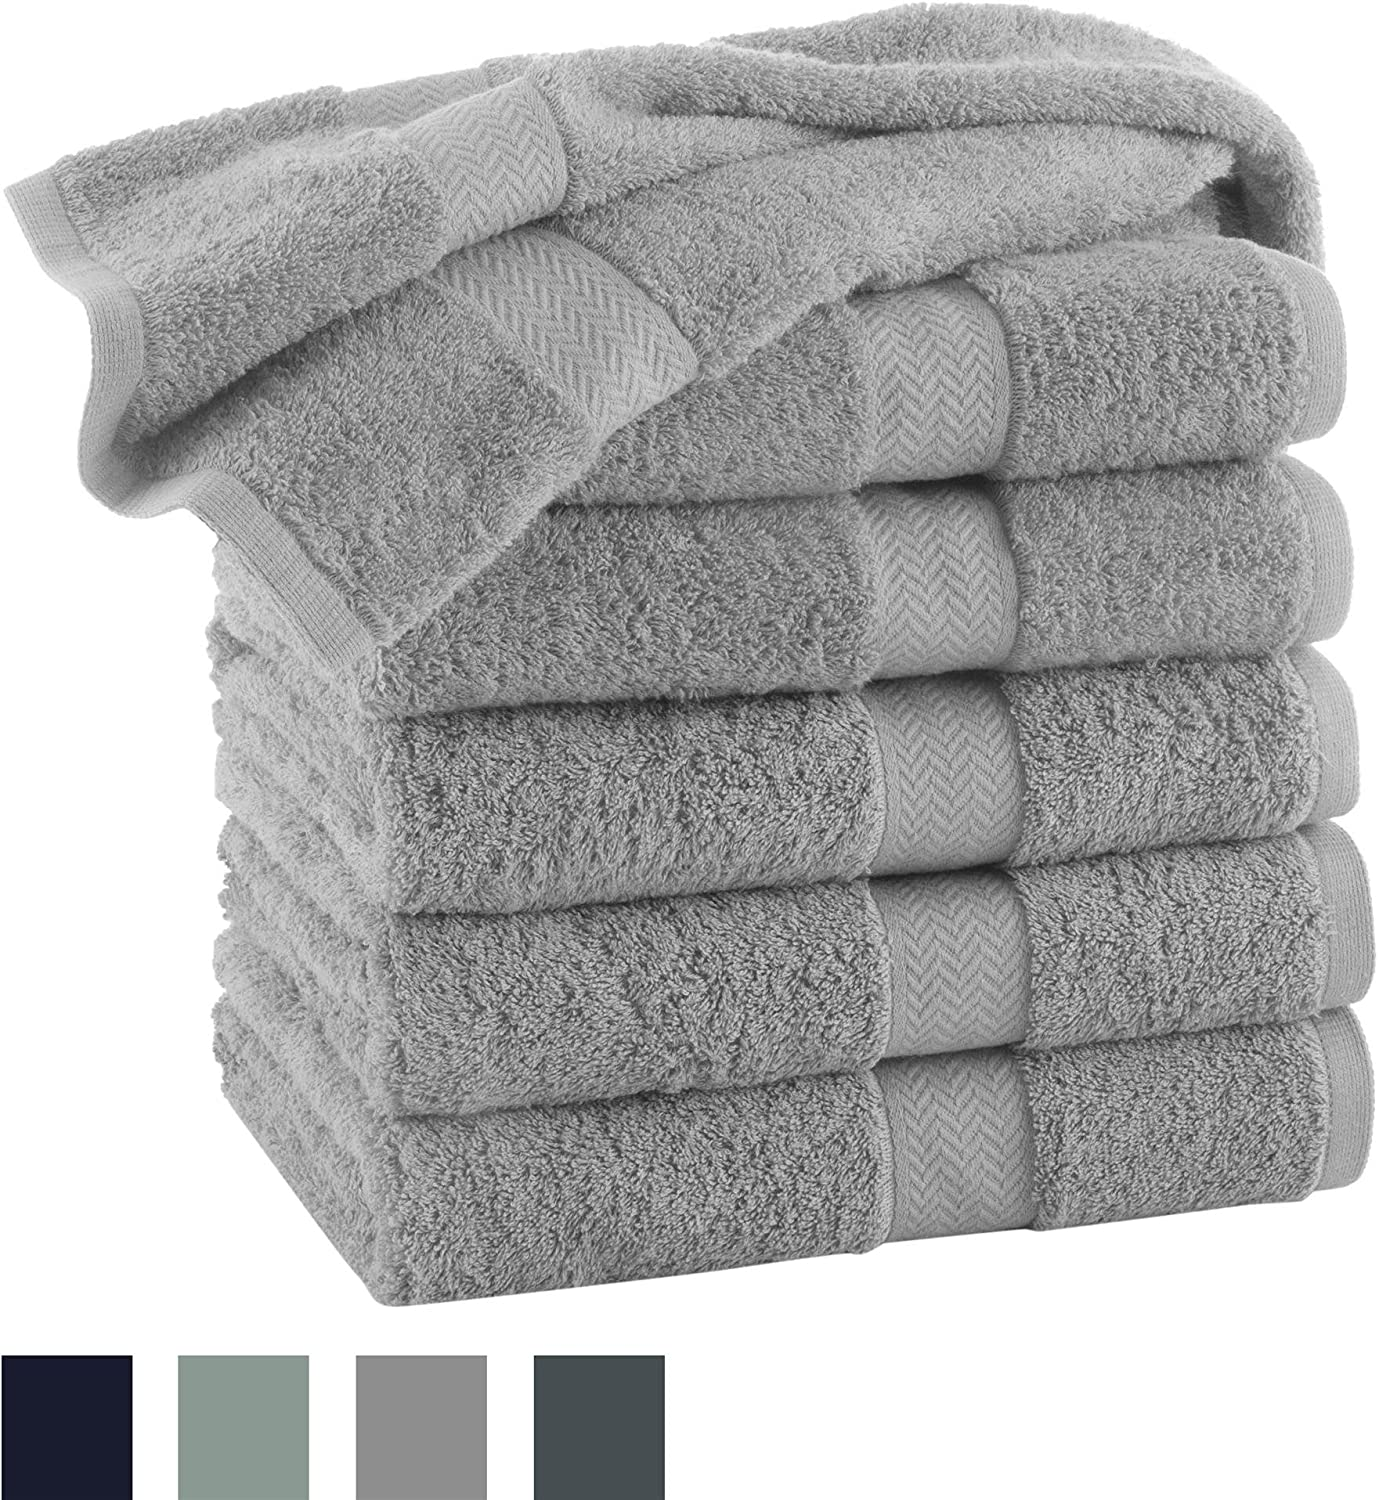 COMMERCIAL 12 PIECE HAND TOWEL SET BY MARTEX -12 Hand Towels, Home, Shower, Tub, Gym, Pool, Golf, Salon - Machine Washable, Absorbent, Professional Grade, Hotel Quality - Gray